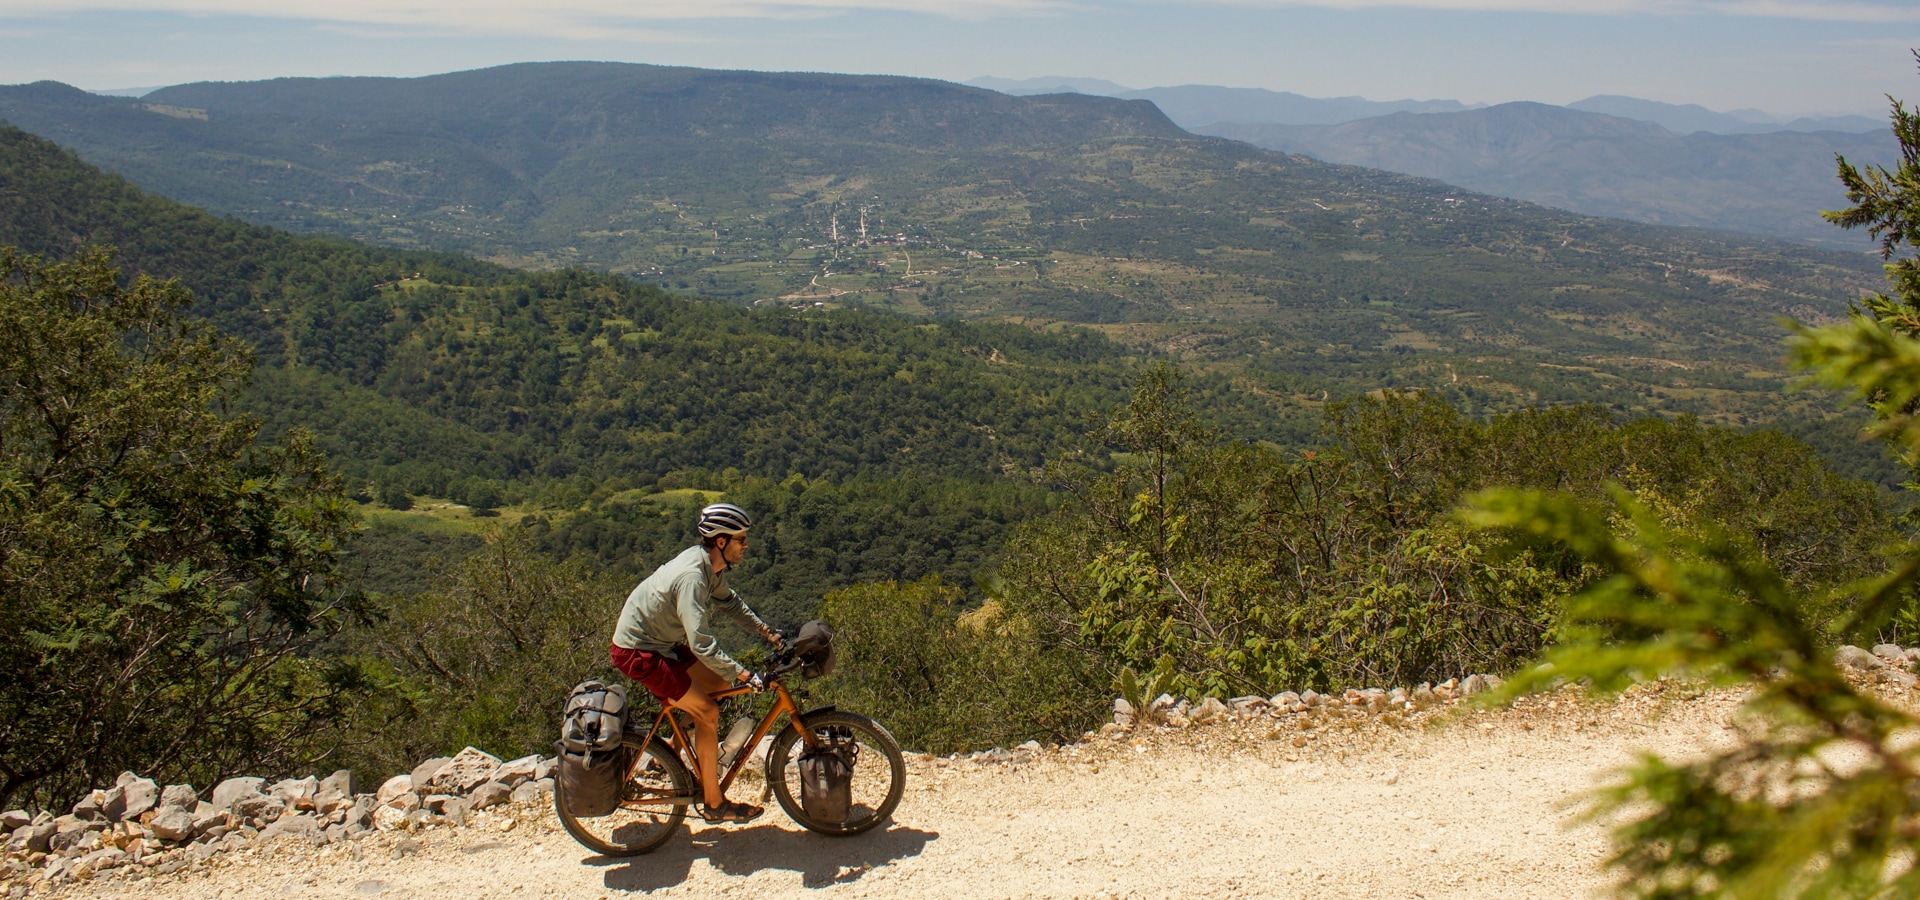 How to bikepack across dangerous countries